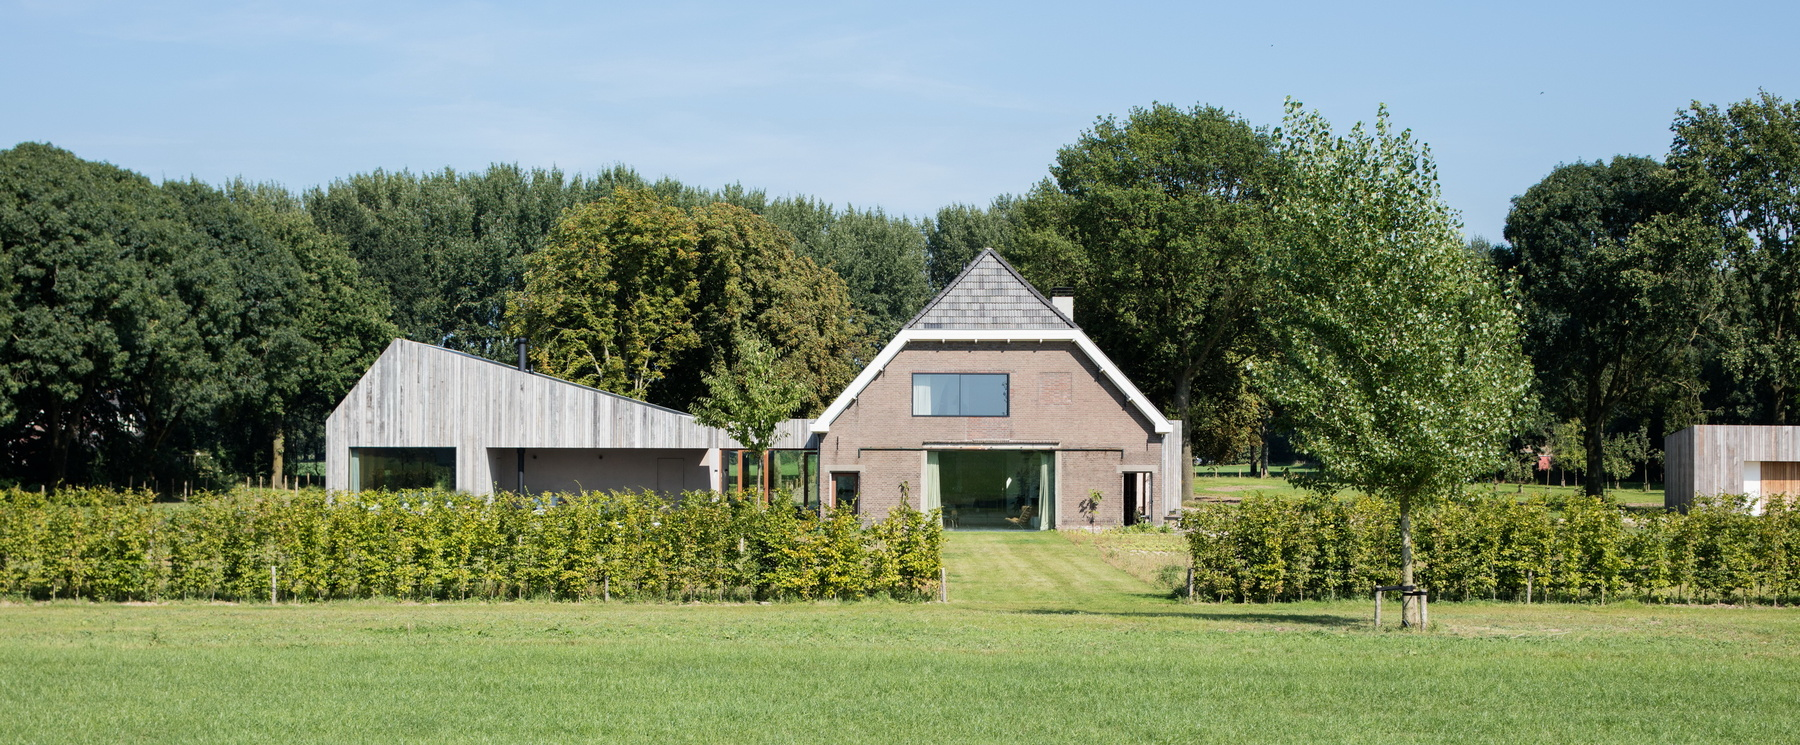 26-Farm_house_Utrecht-Zecc_Architecten-wood-concret.jpg